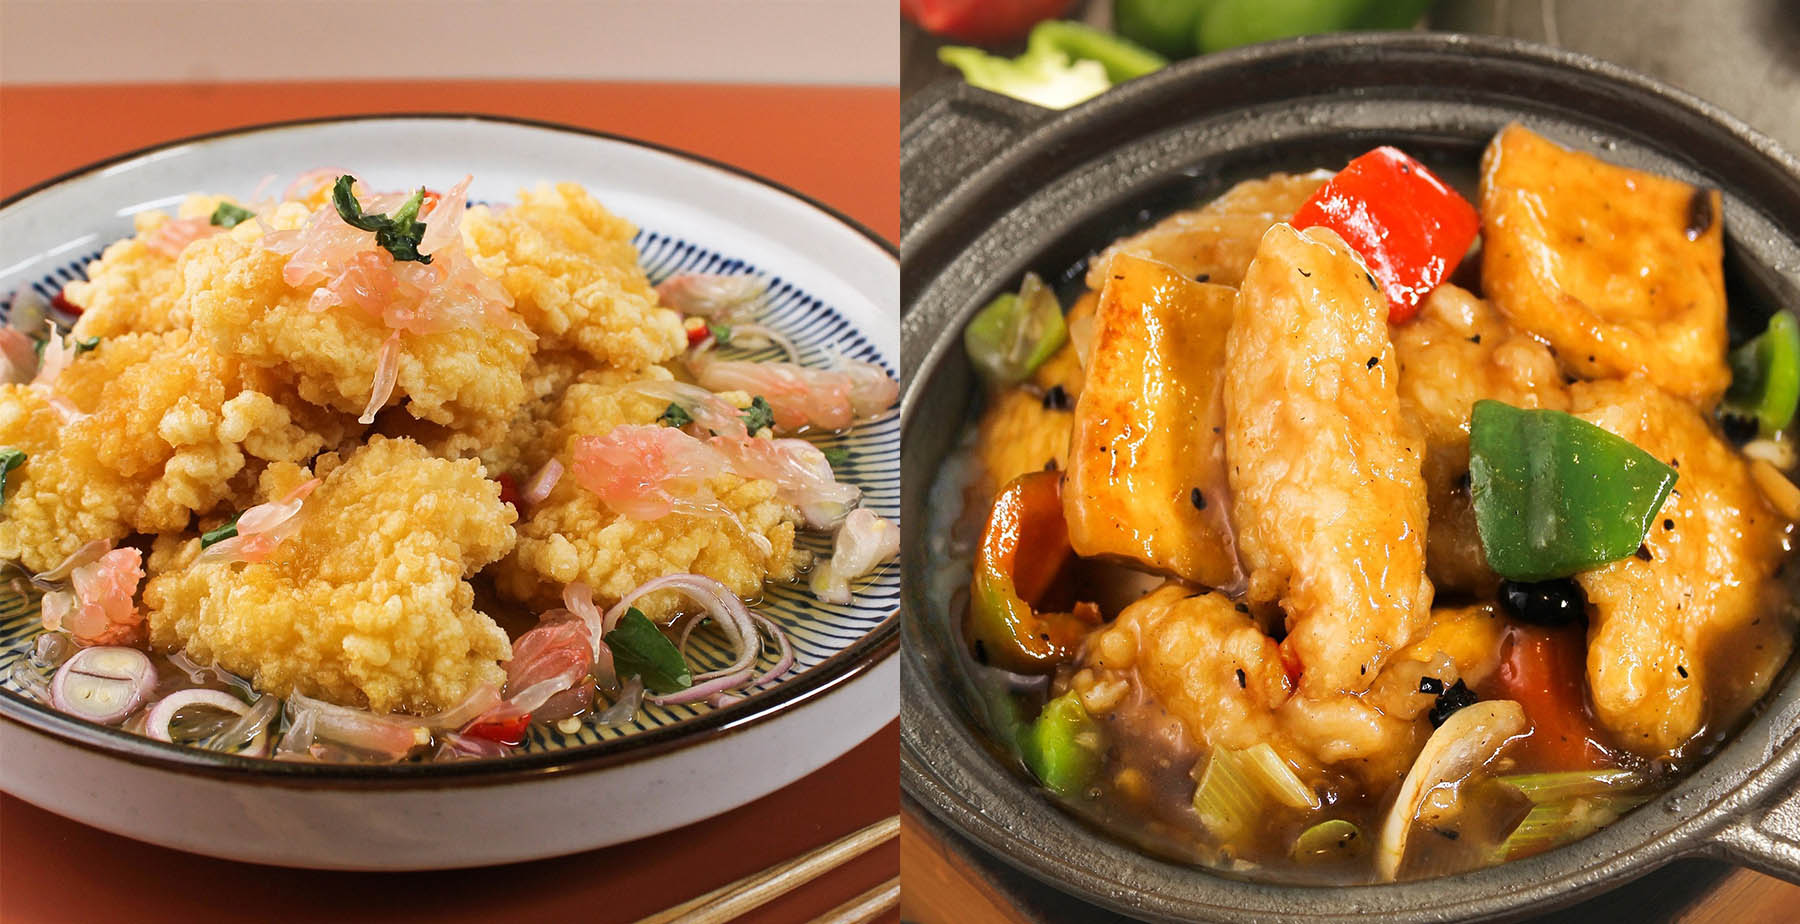 King Chef fish dishes